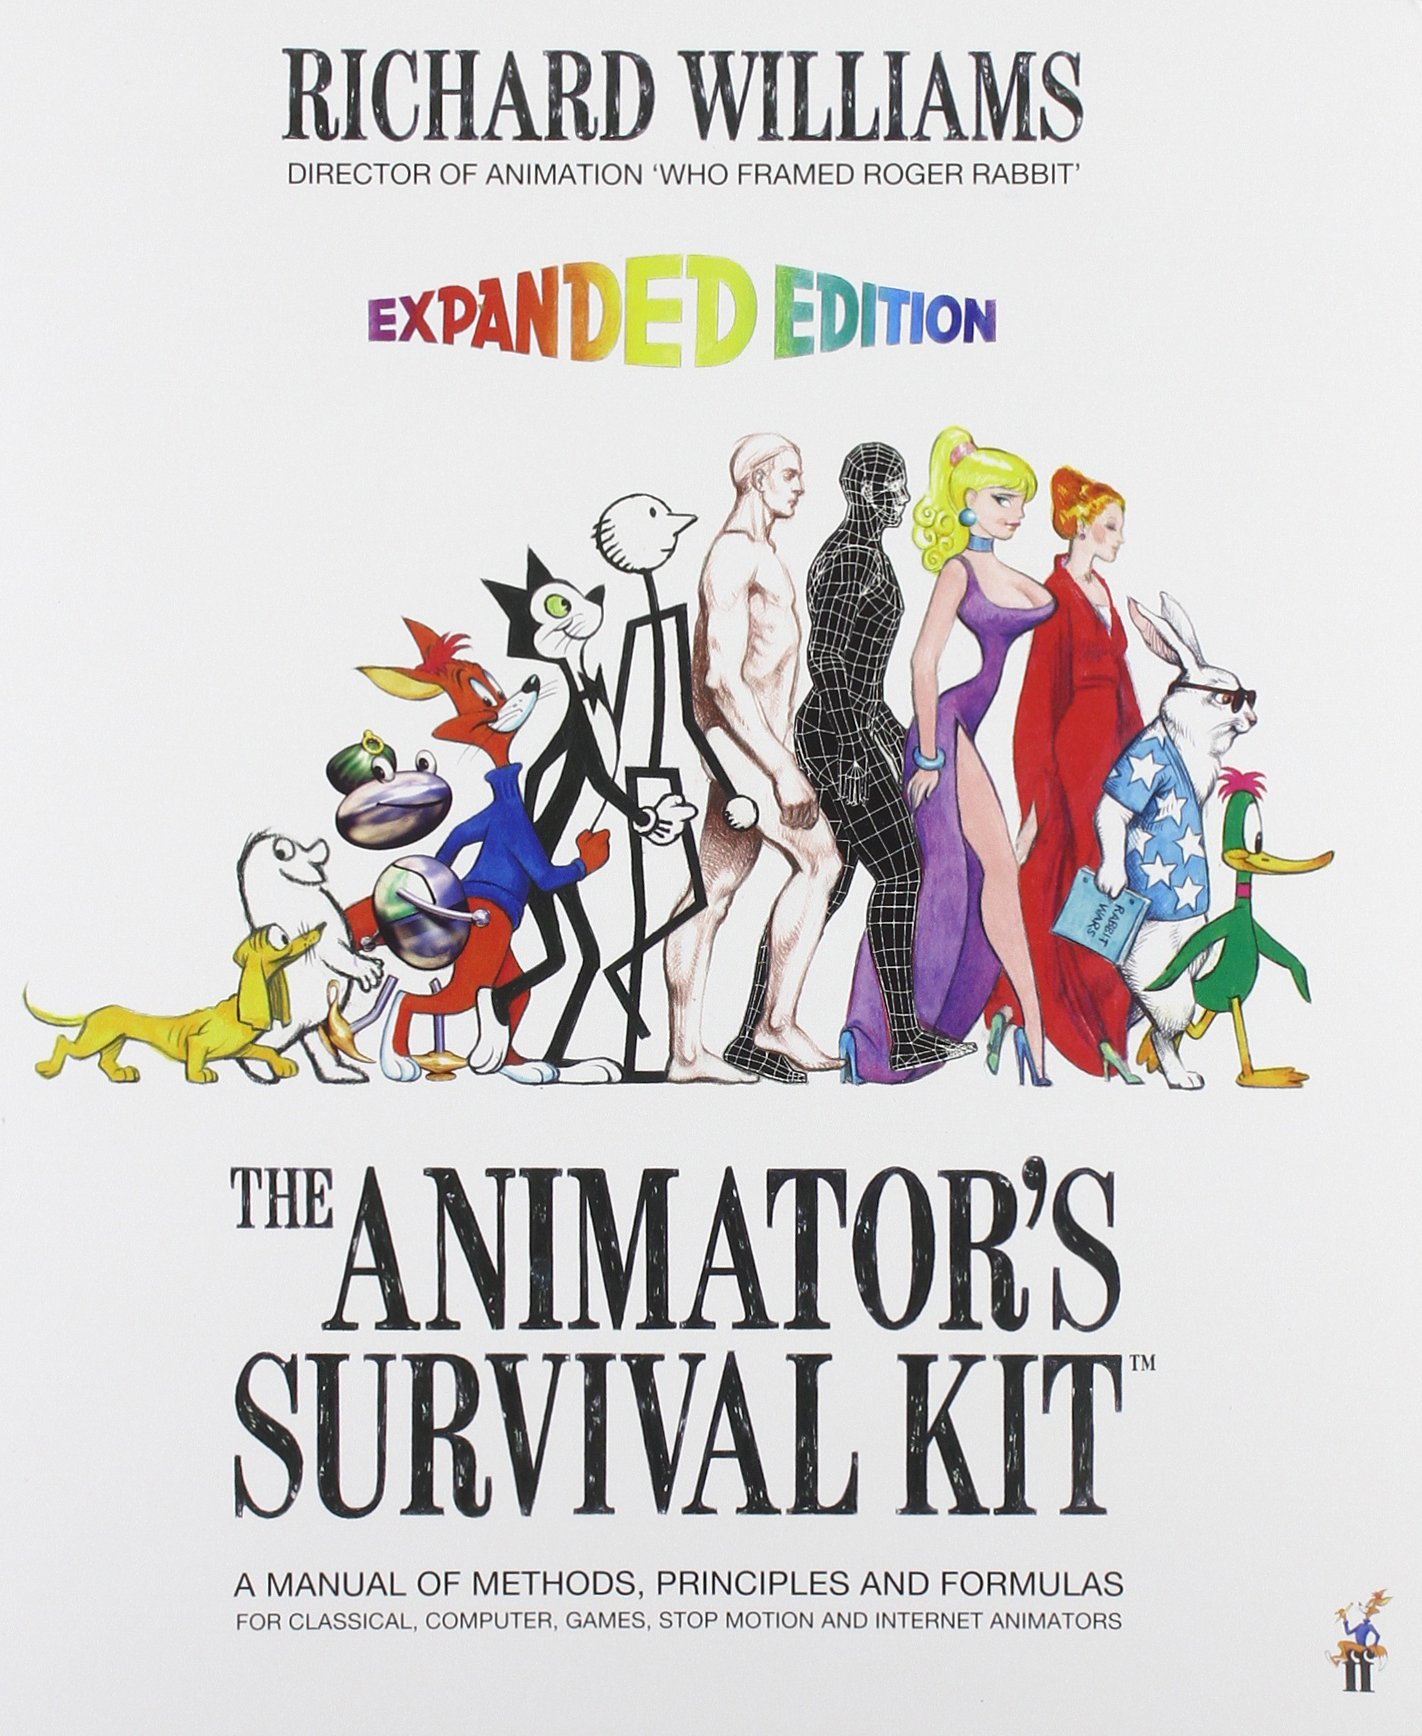 6The Animators Survival Kit